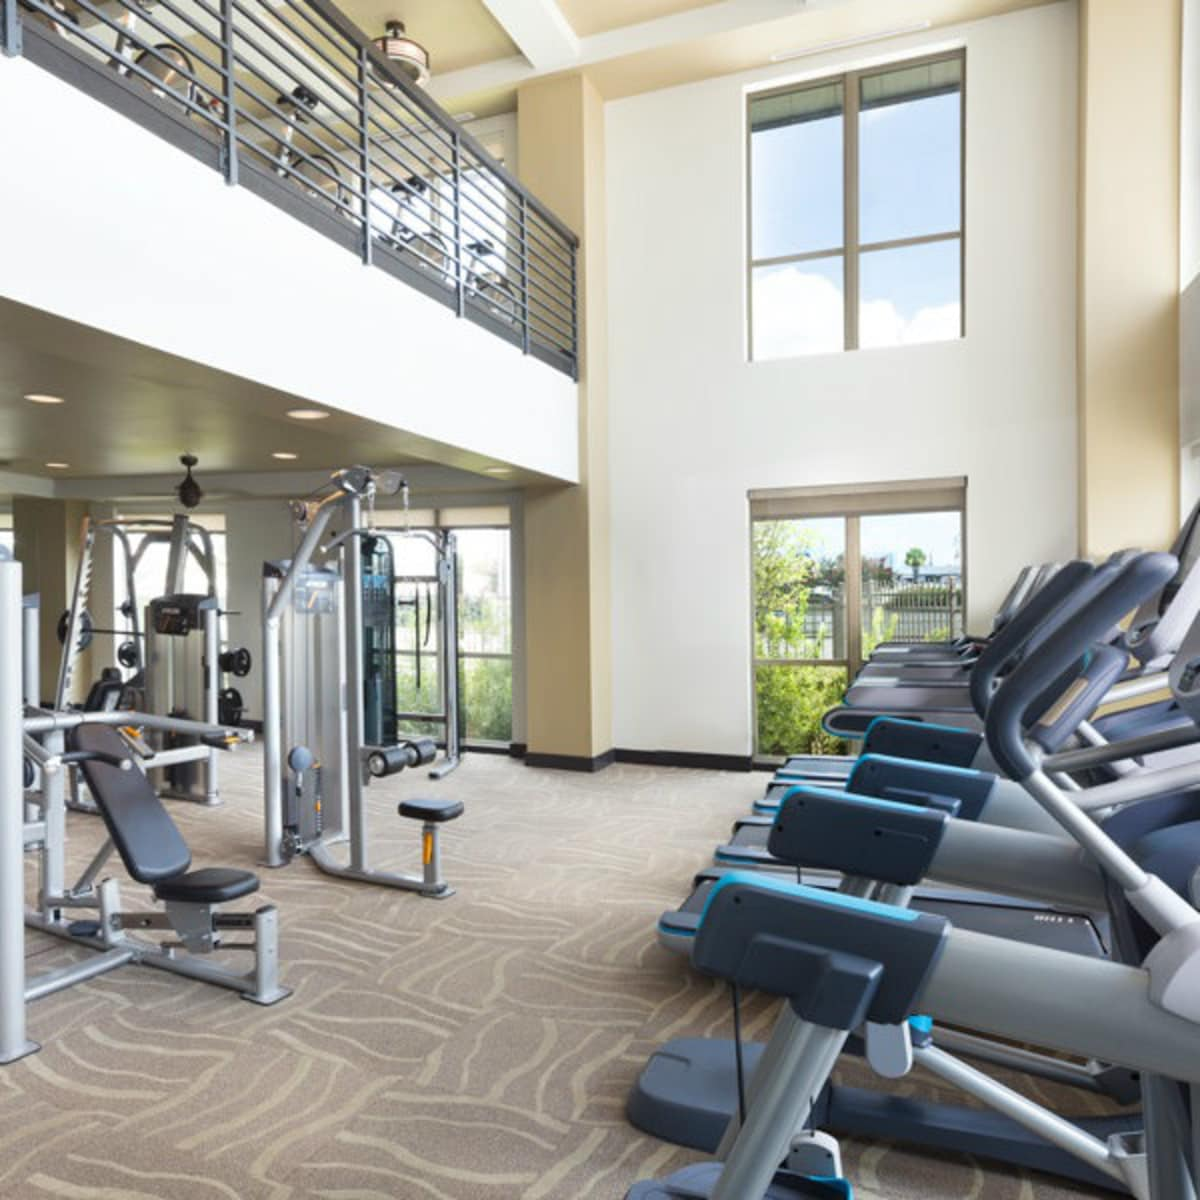 District at Memorial fitness center